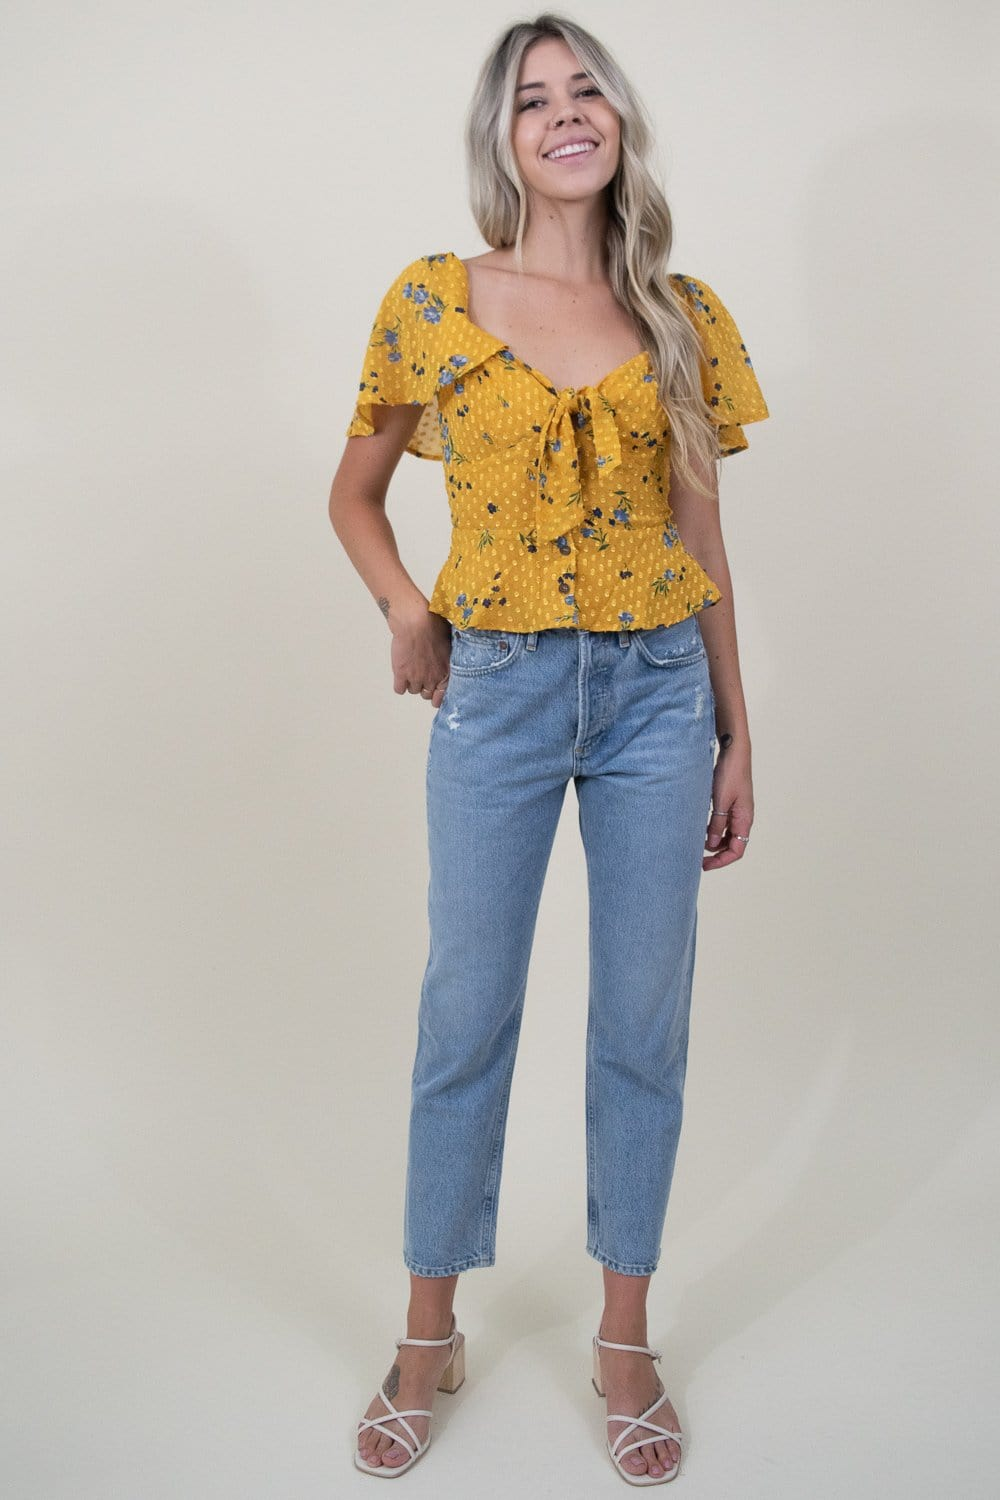 ASTR The Label Karla Top in Marigold